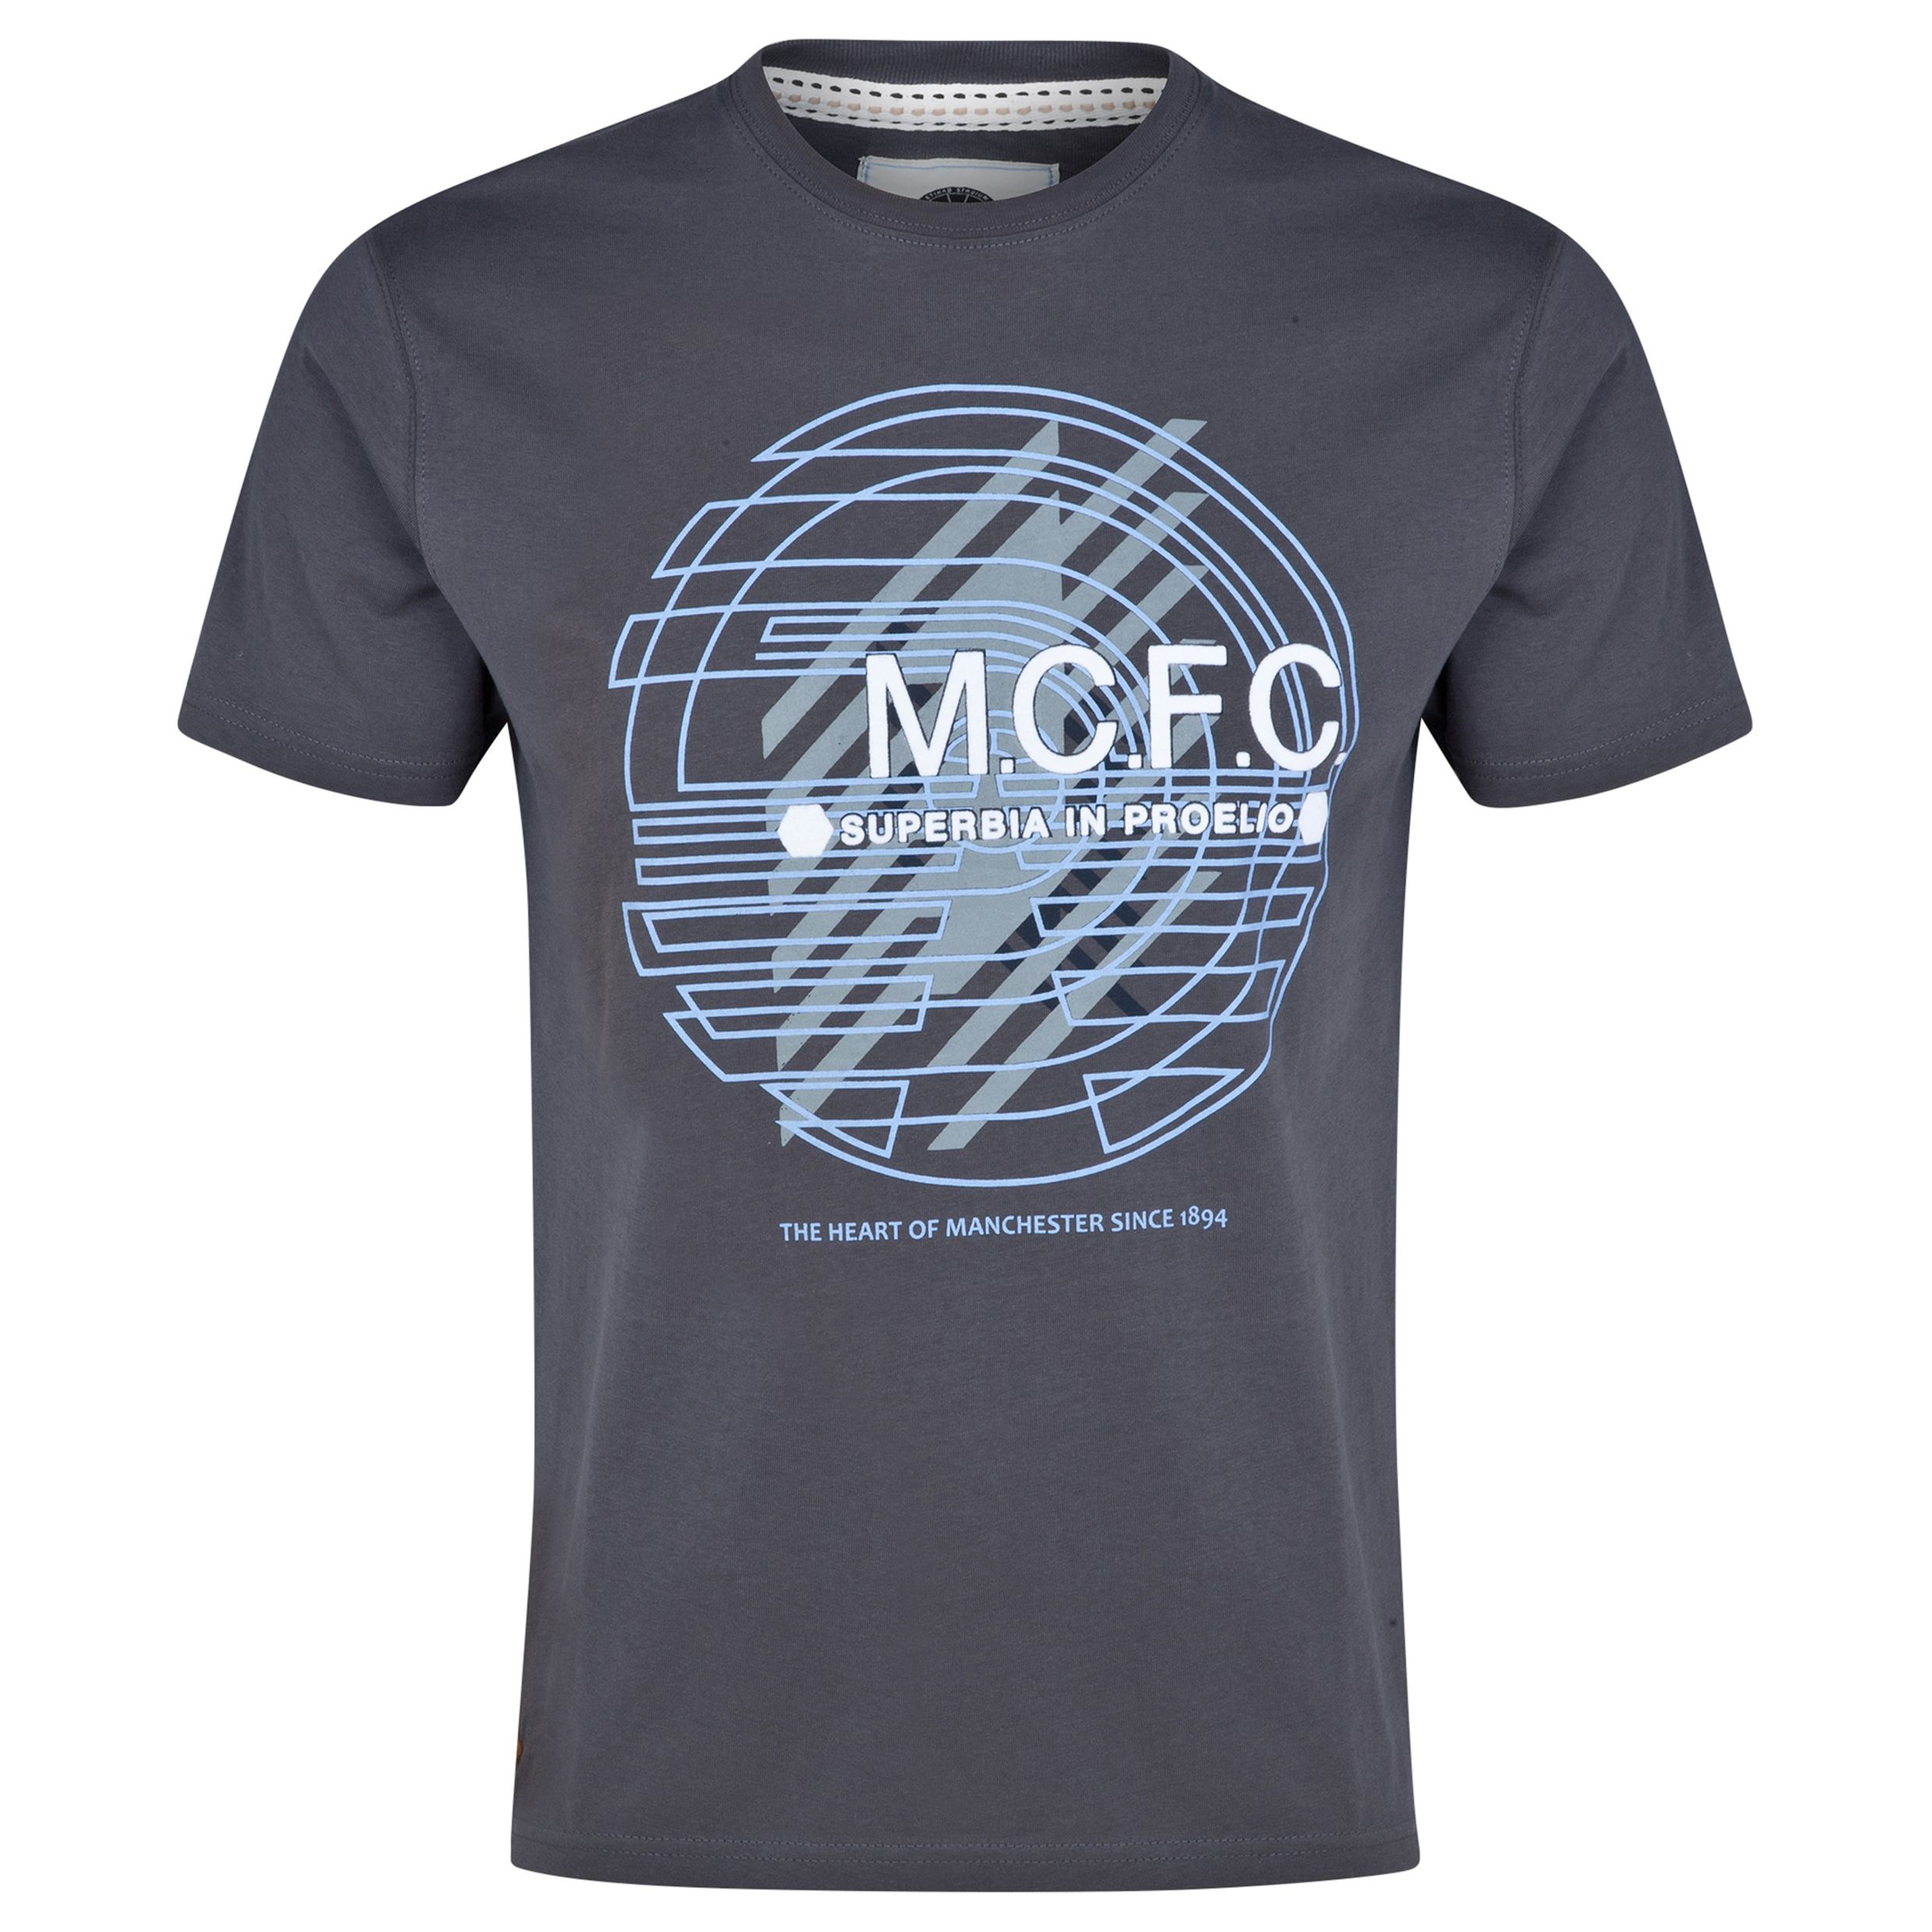 Manchester City T-Shirt - Charcoal - Mens